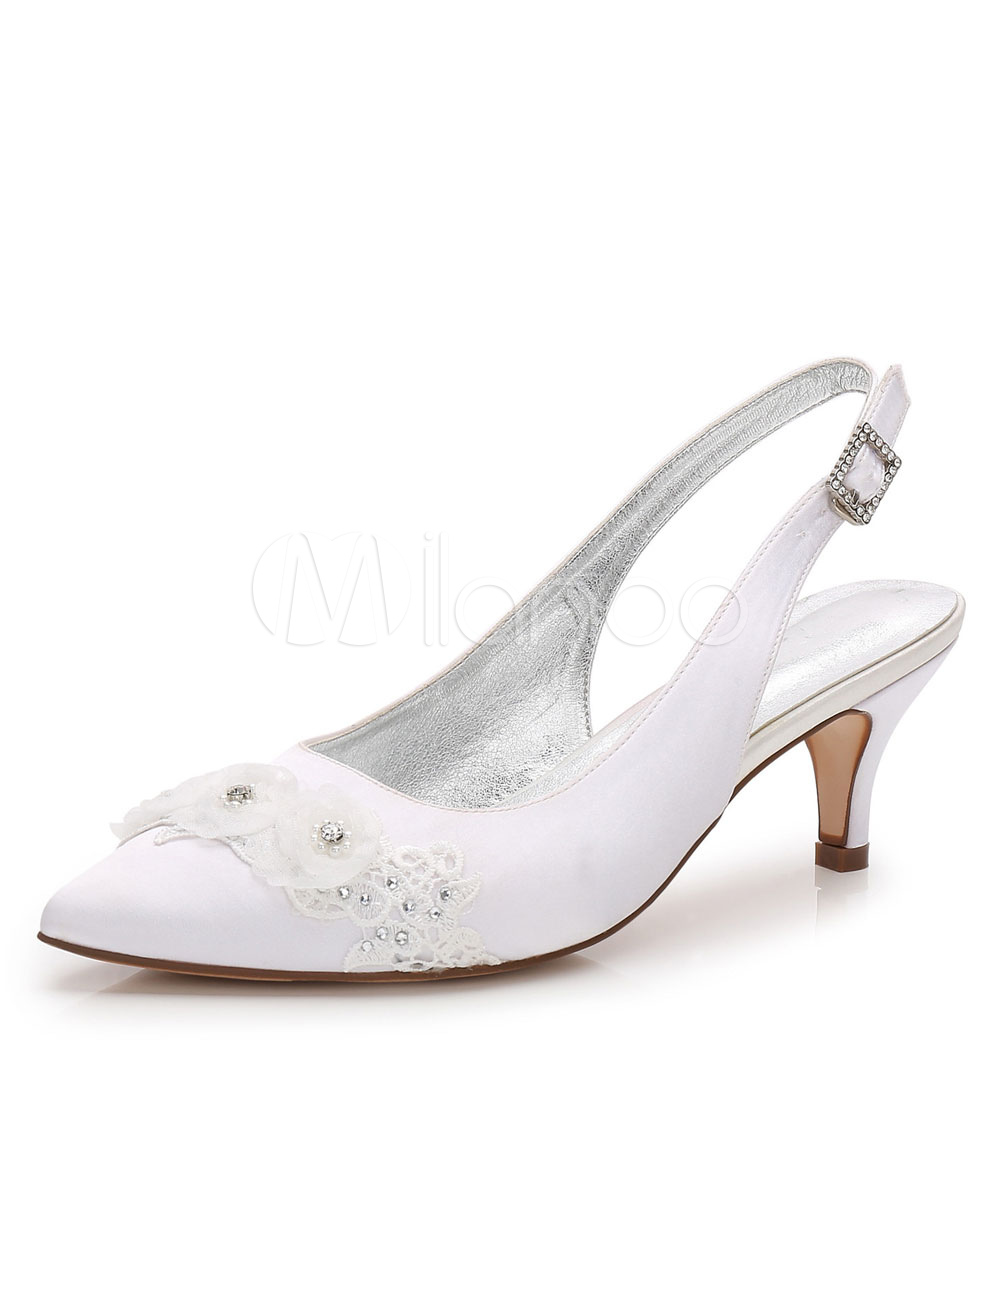 White Wedding Shoes Pointed Toe Kitten Heel Lace Slingbacks Bridal Shoes